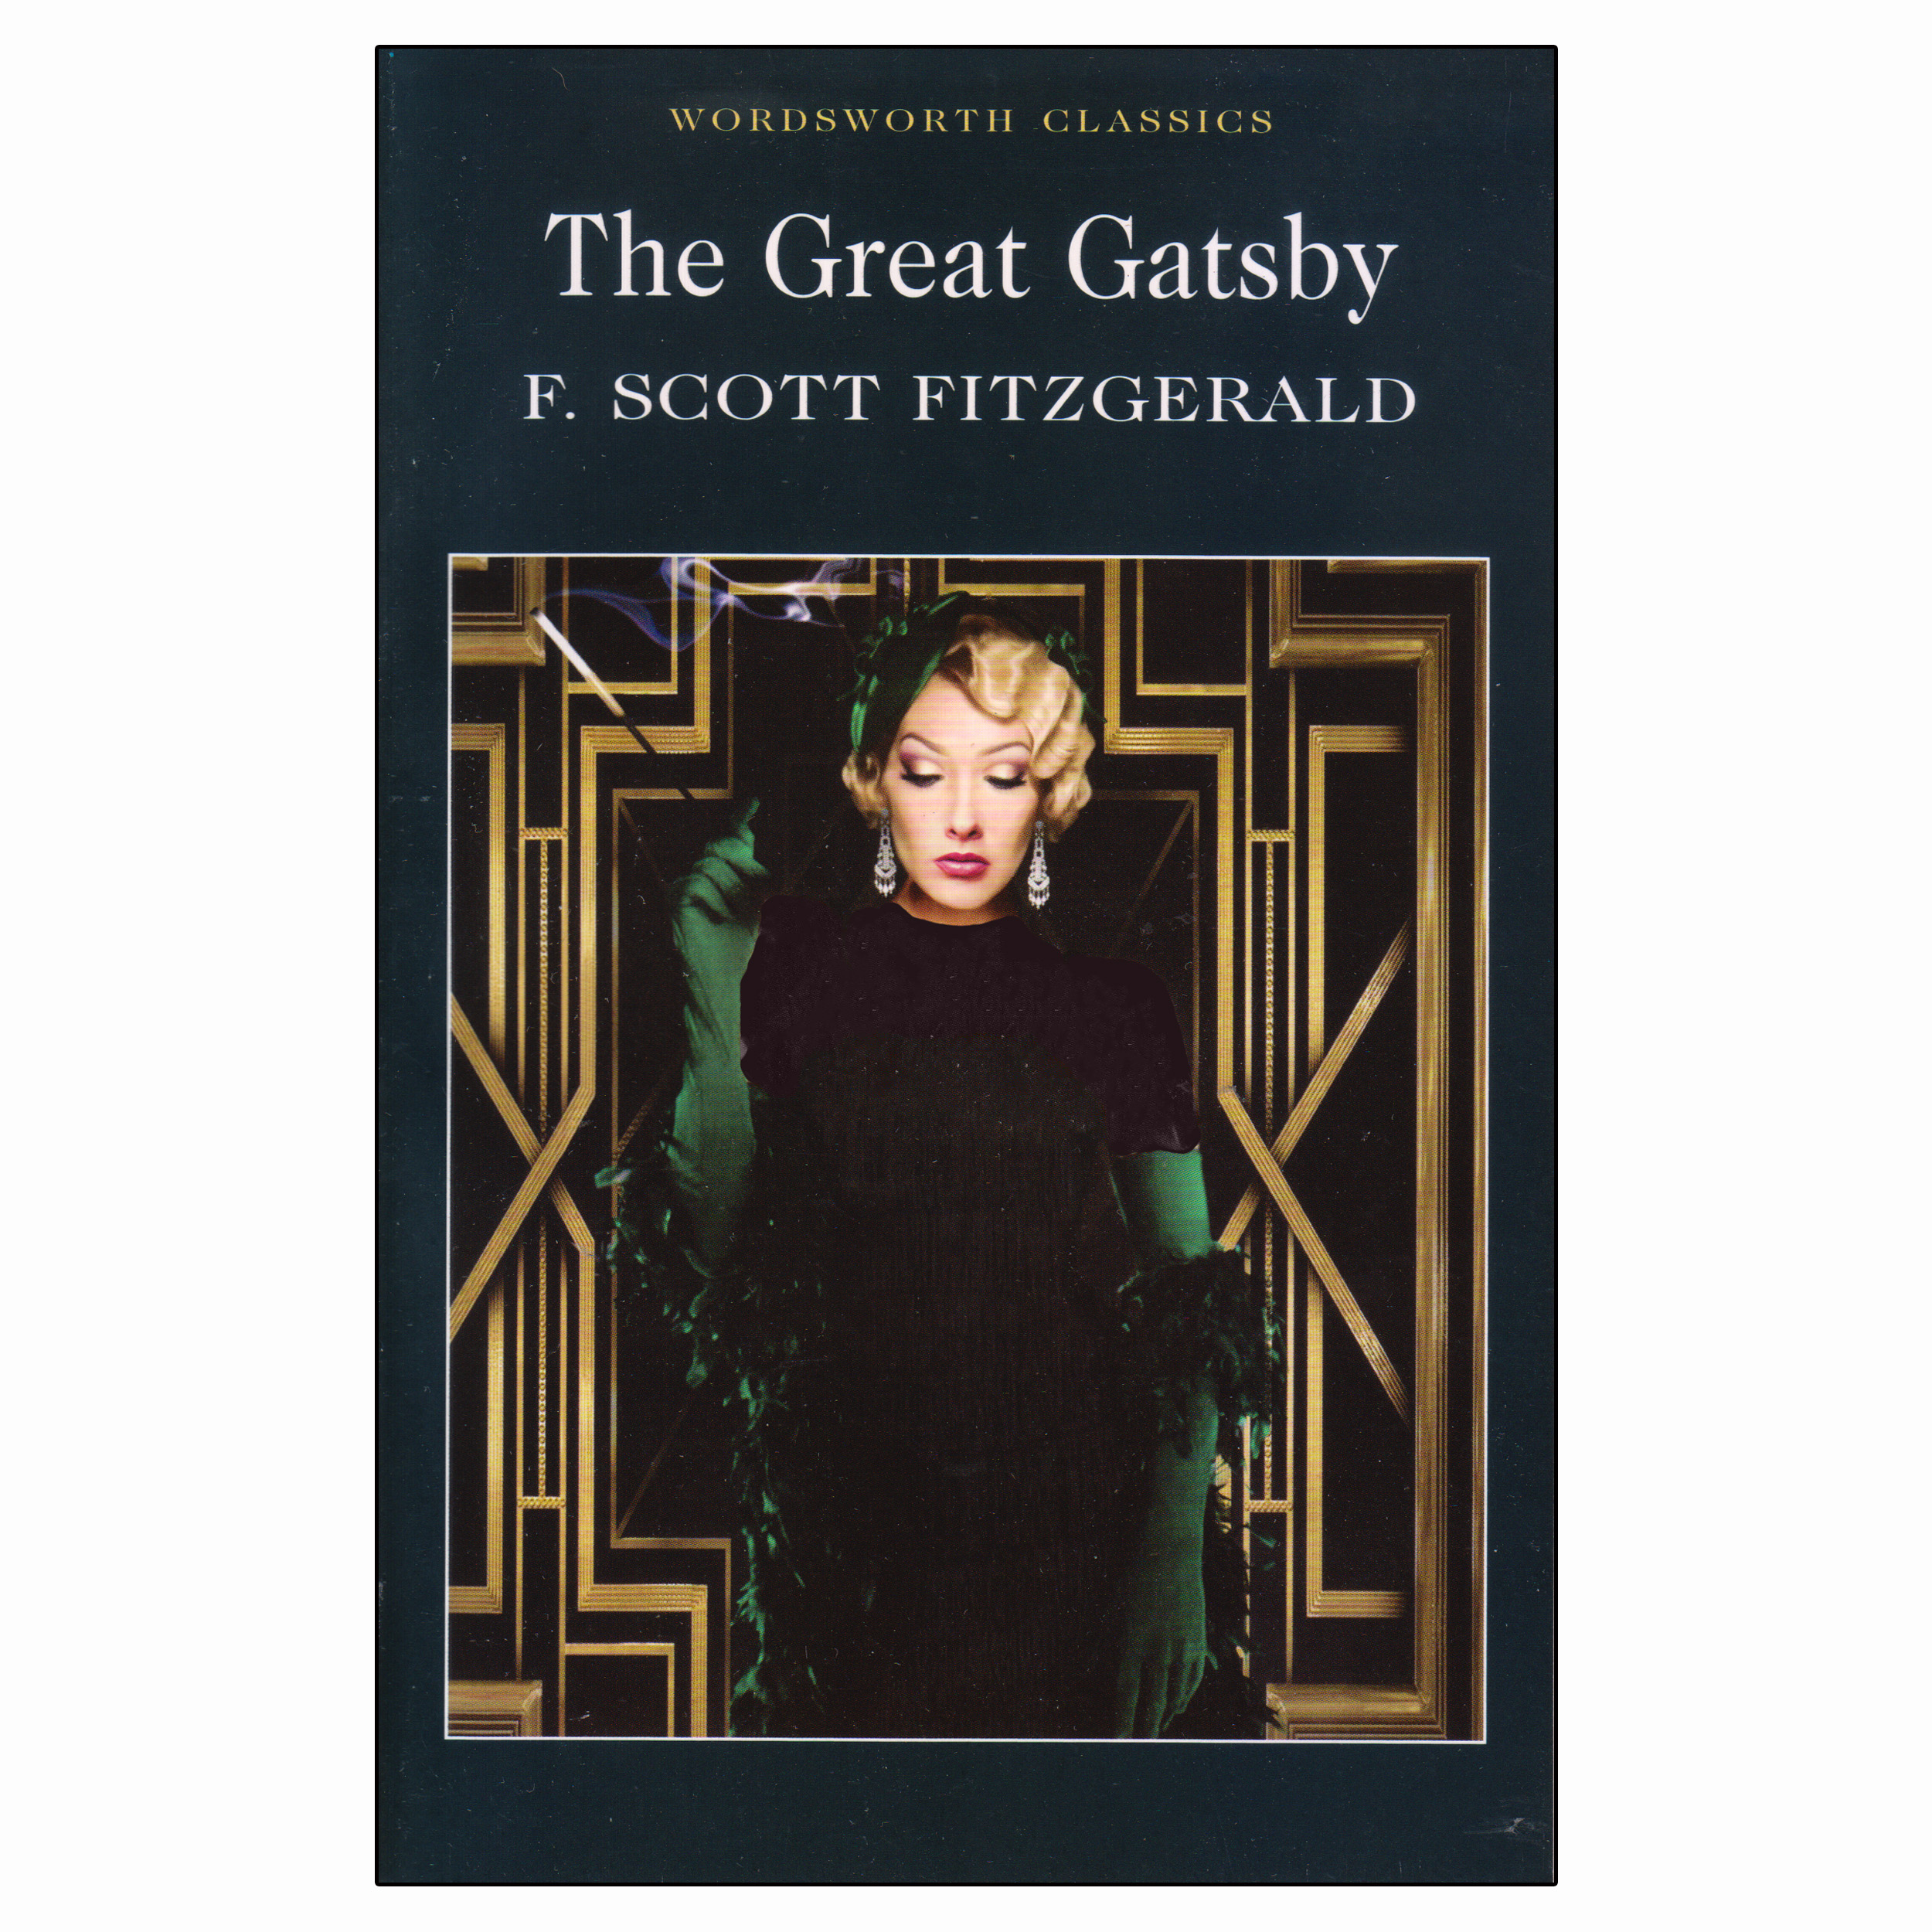 کتاب The Great Gatsby اثر F. Scott Fitzgerald انتشارات Wordsworth Classics